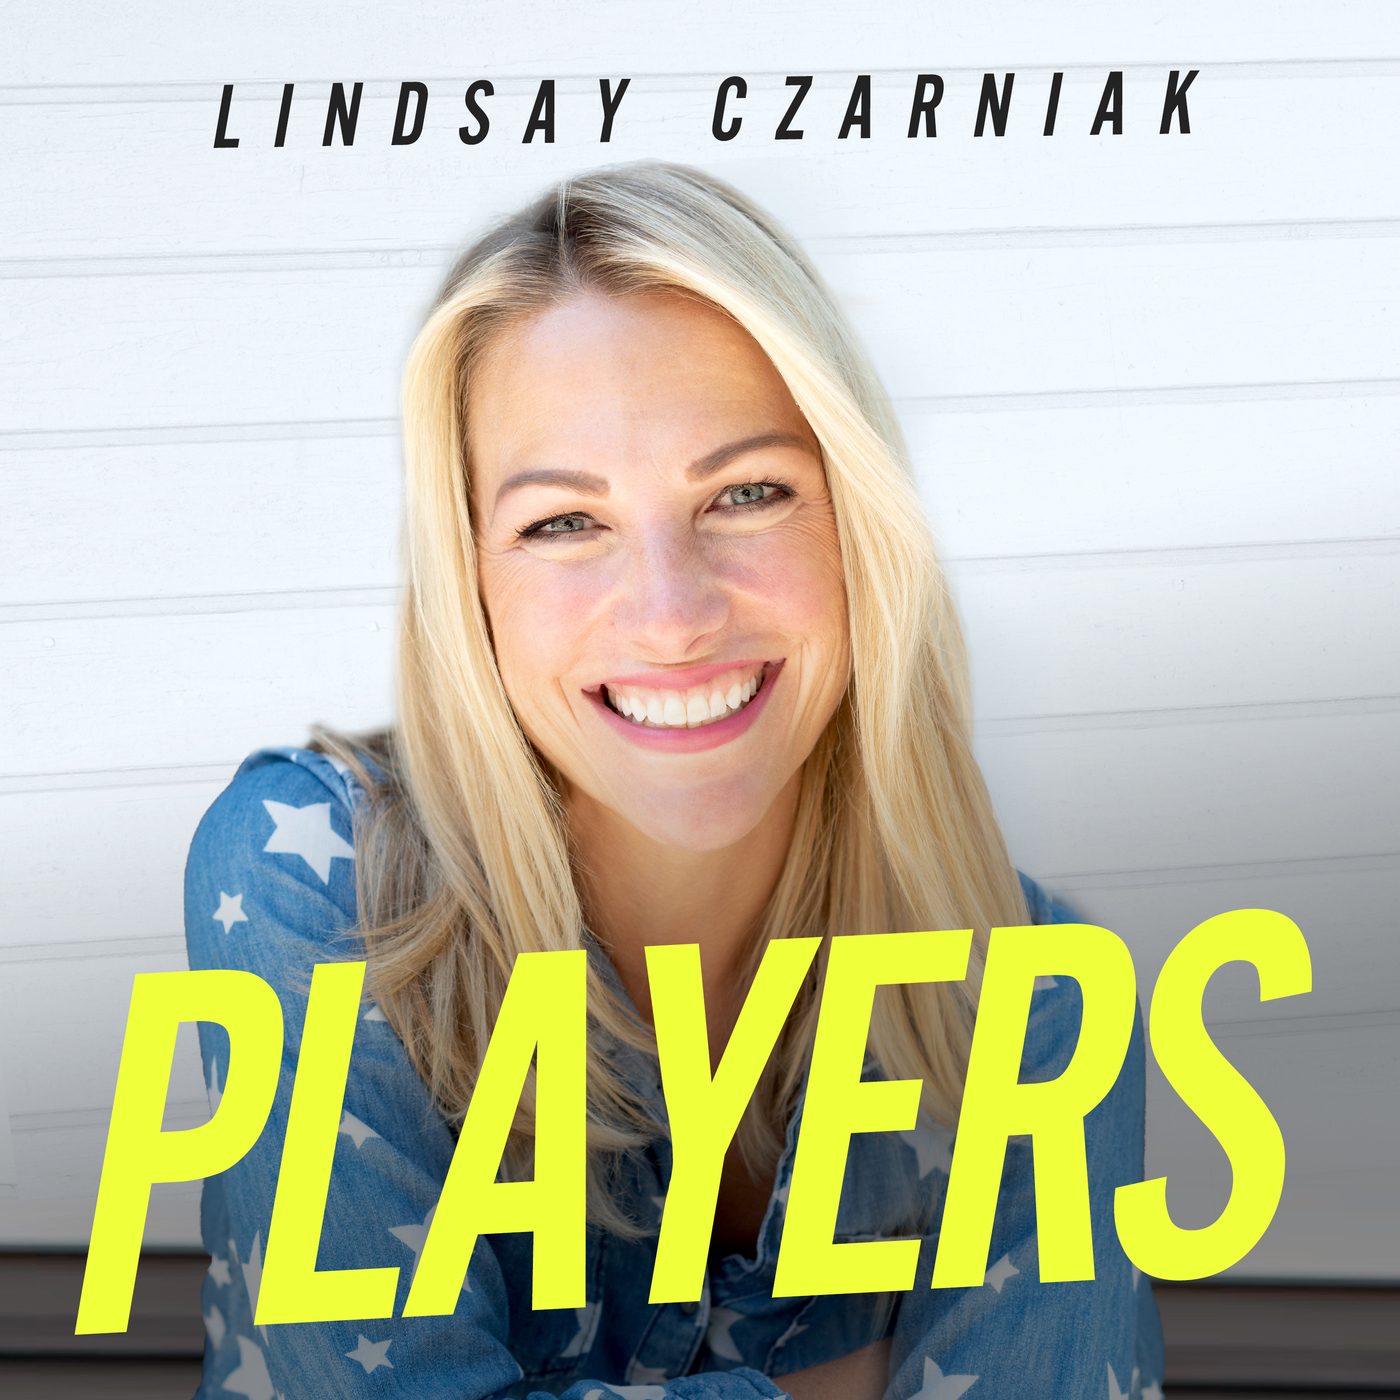 Players with Lindsay Czarniak